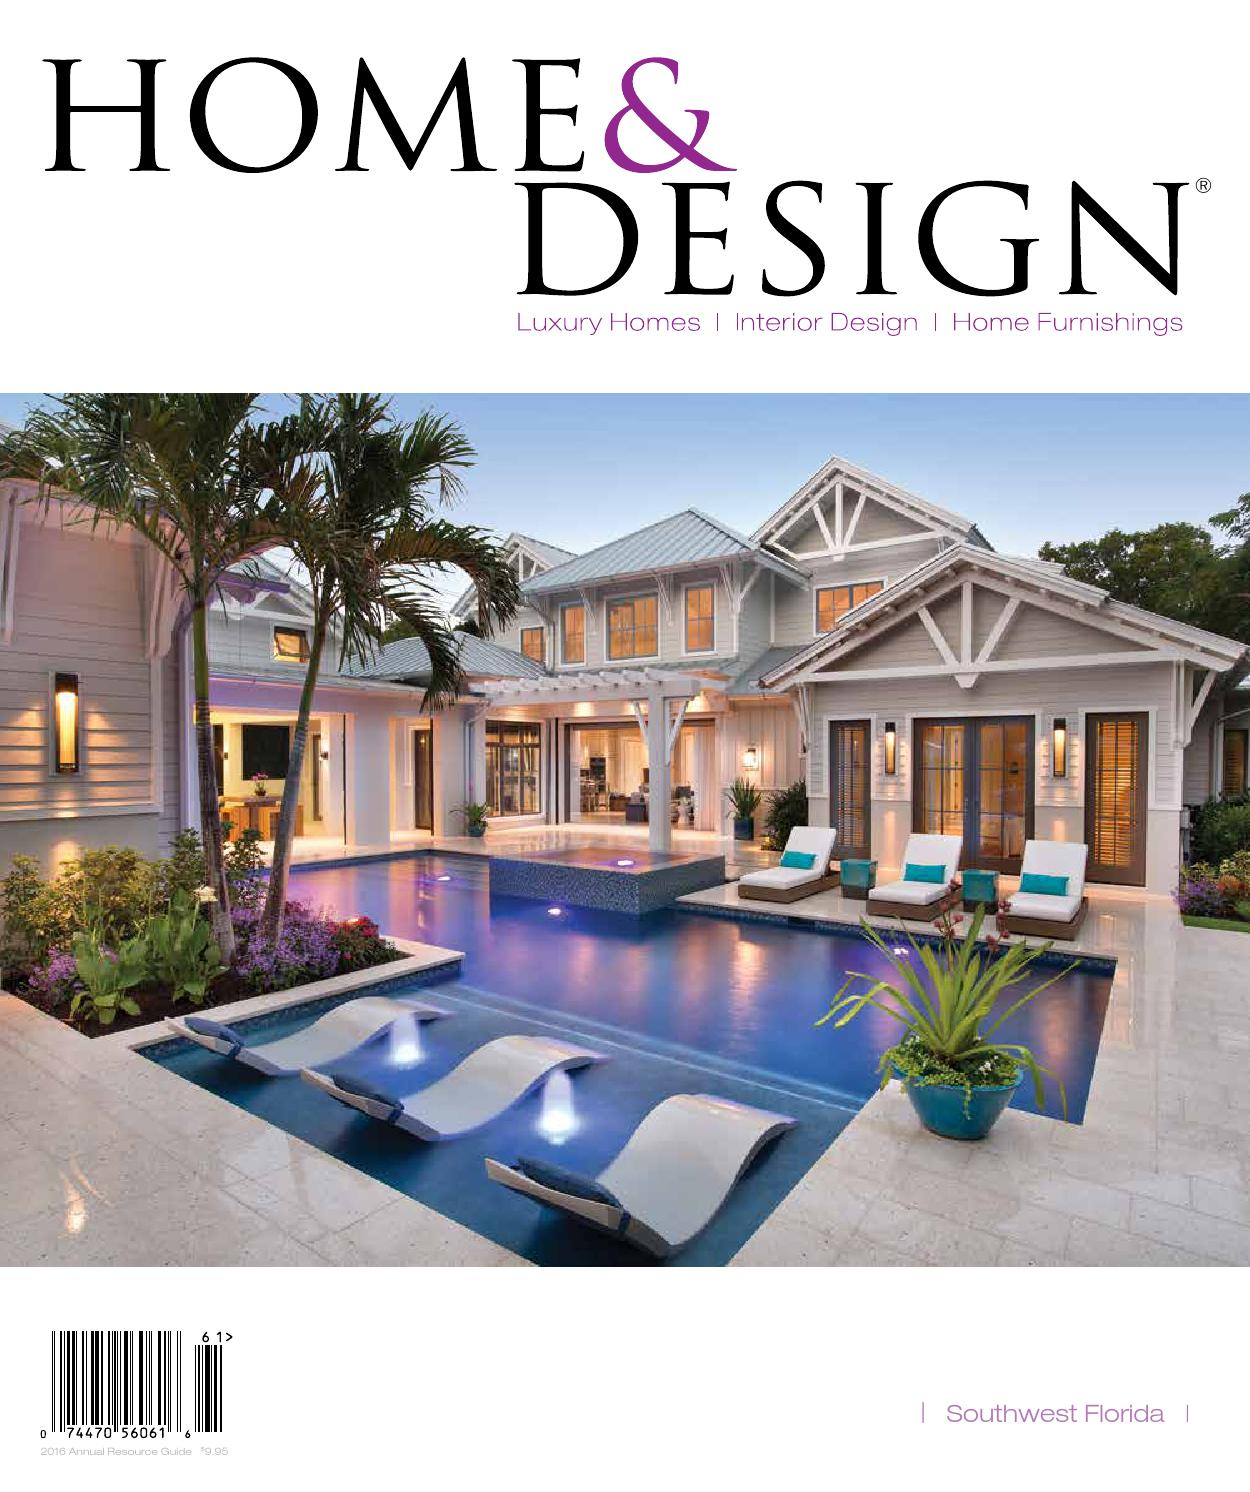 Home design magazine annual resource guide 2016 for Home builders magazine